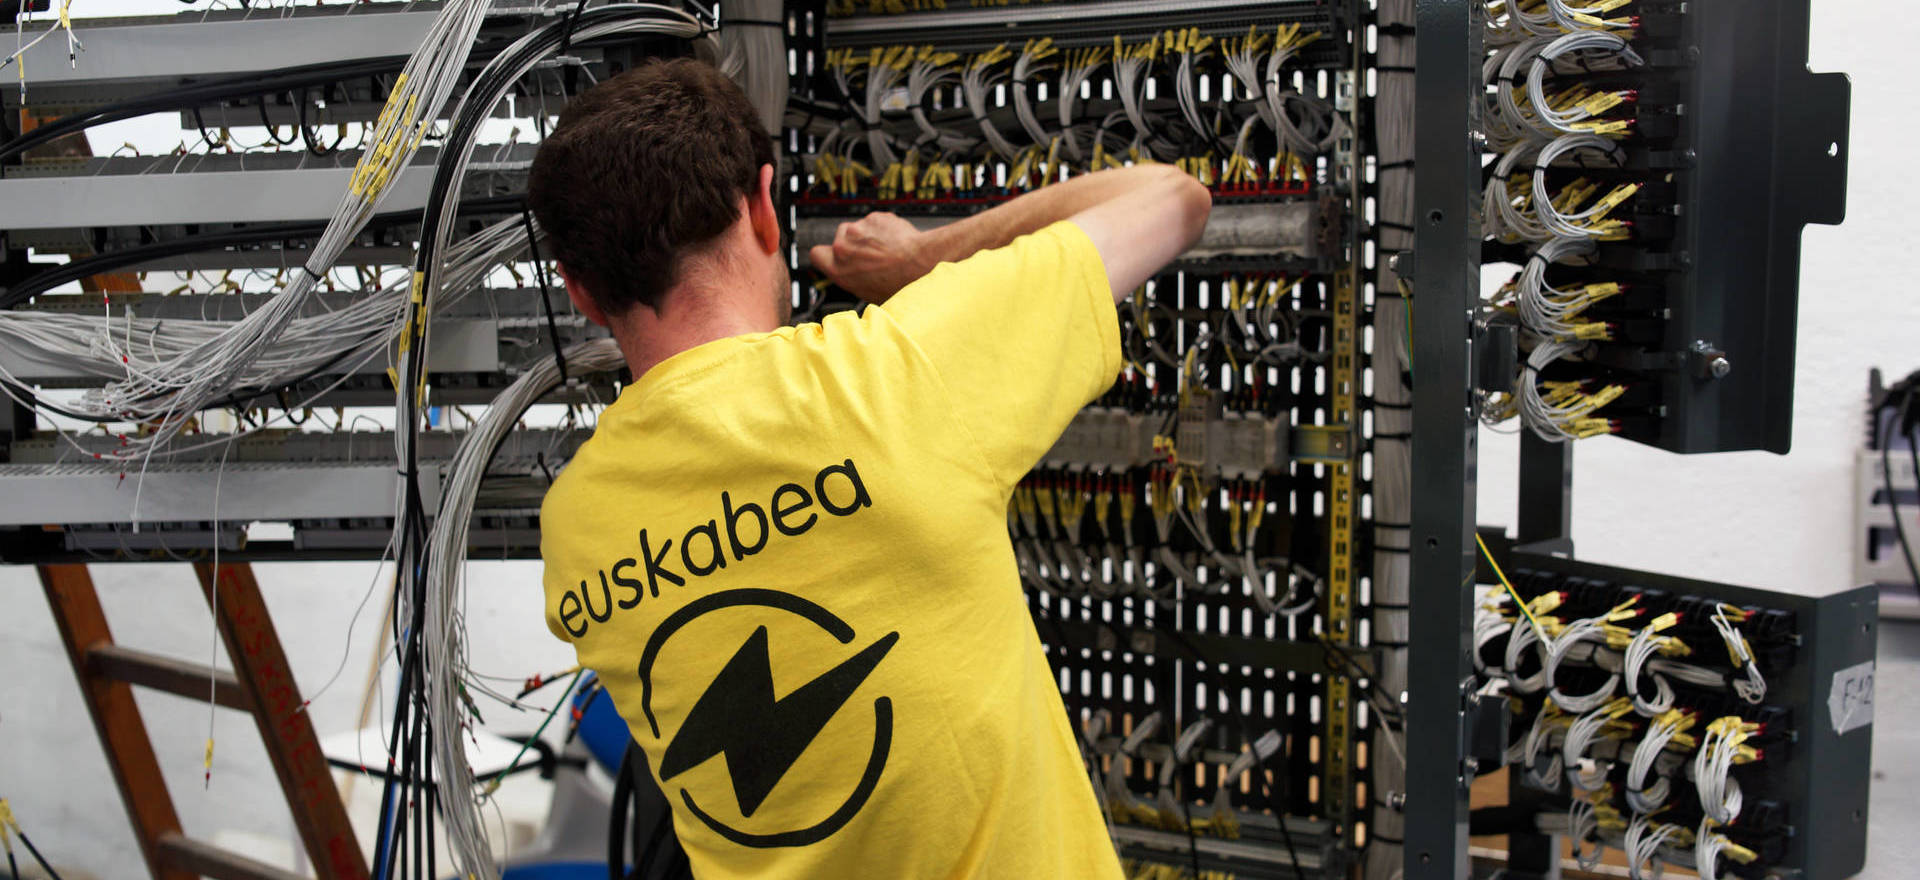 Euskabea Group transforms its industrial processes to double sales